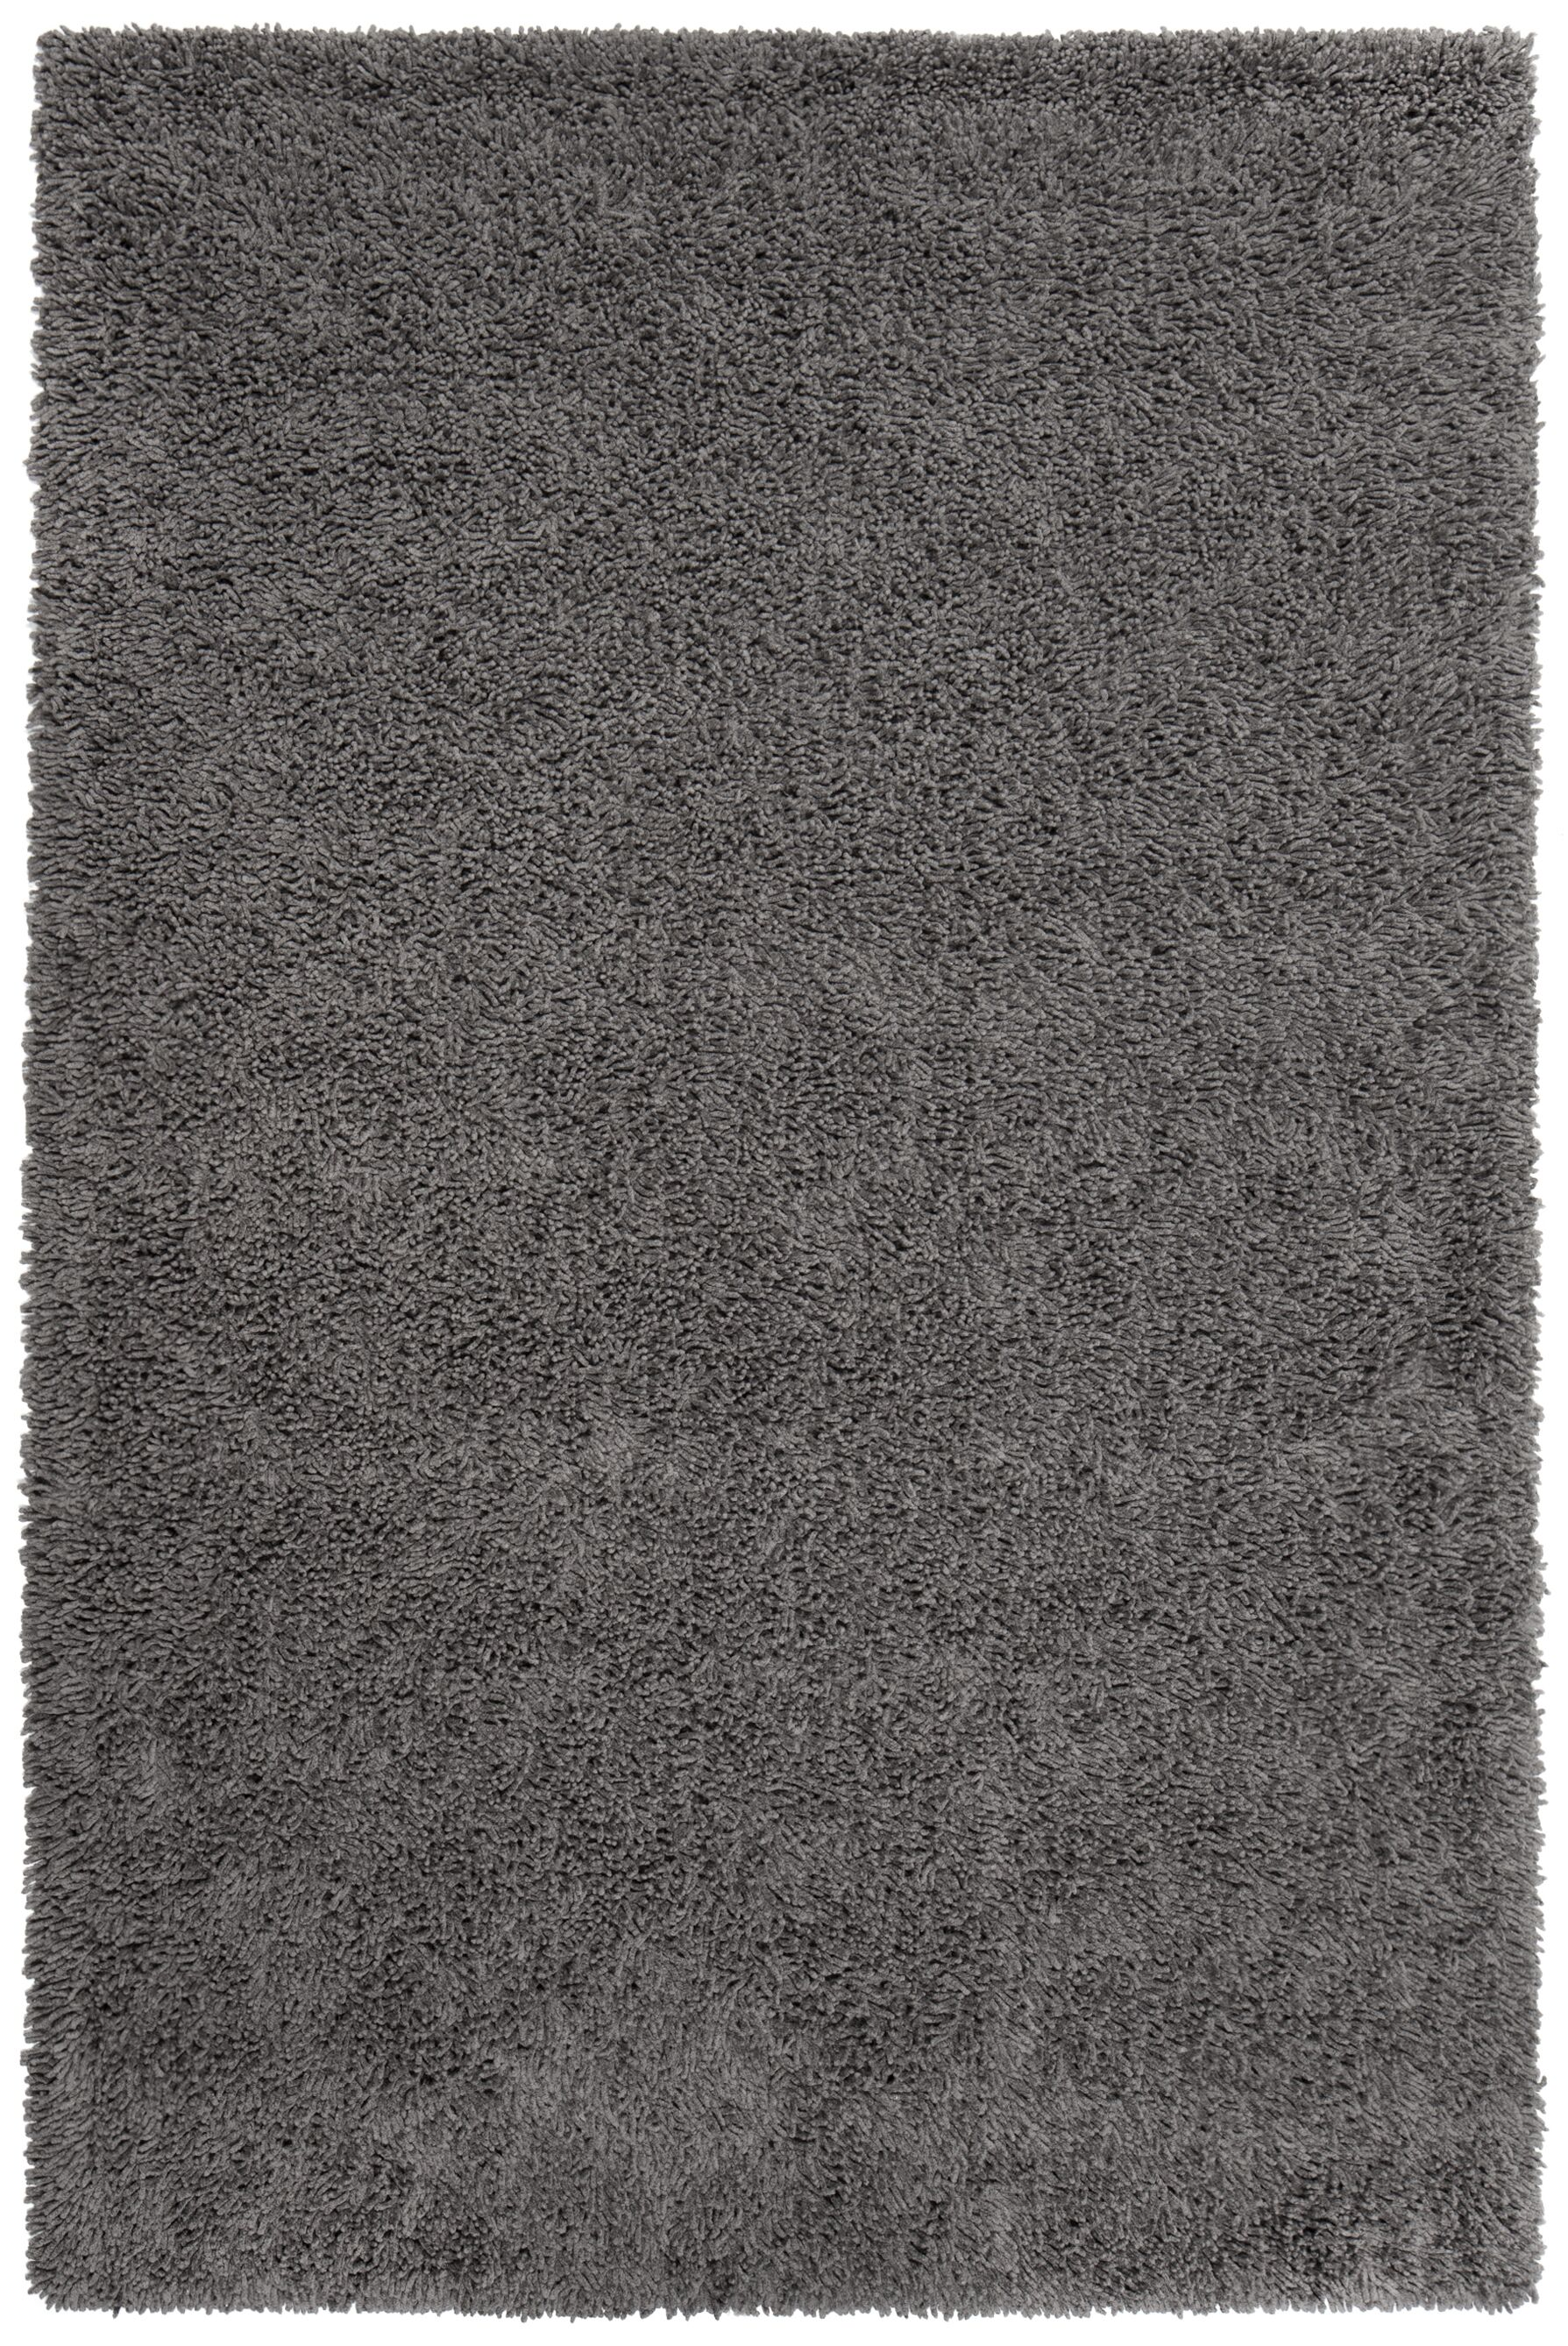 Mcginnis Hand-Tufted Graphite Area Rug Rug Size: 5' x 8'